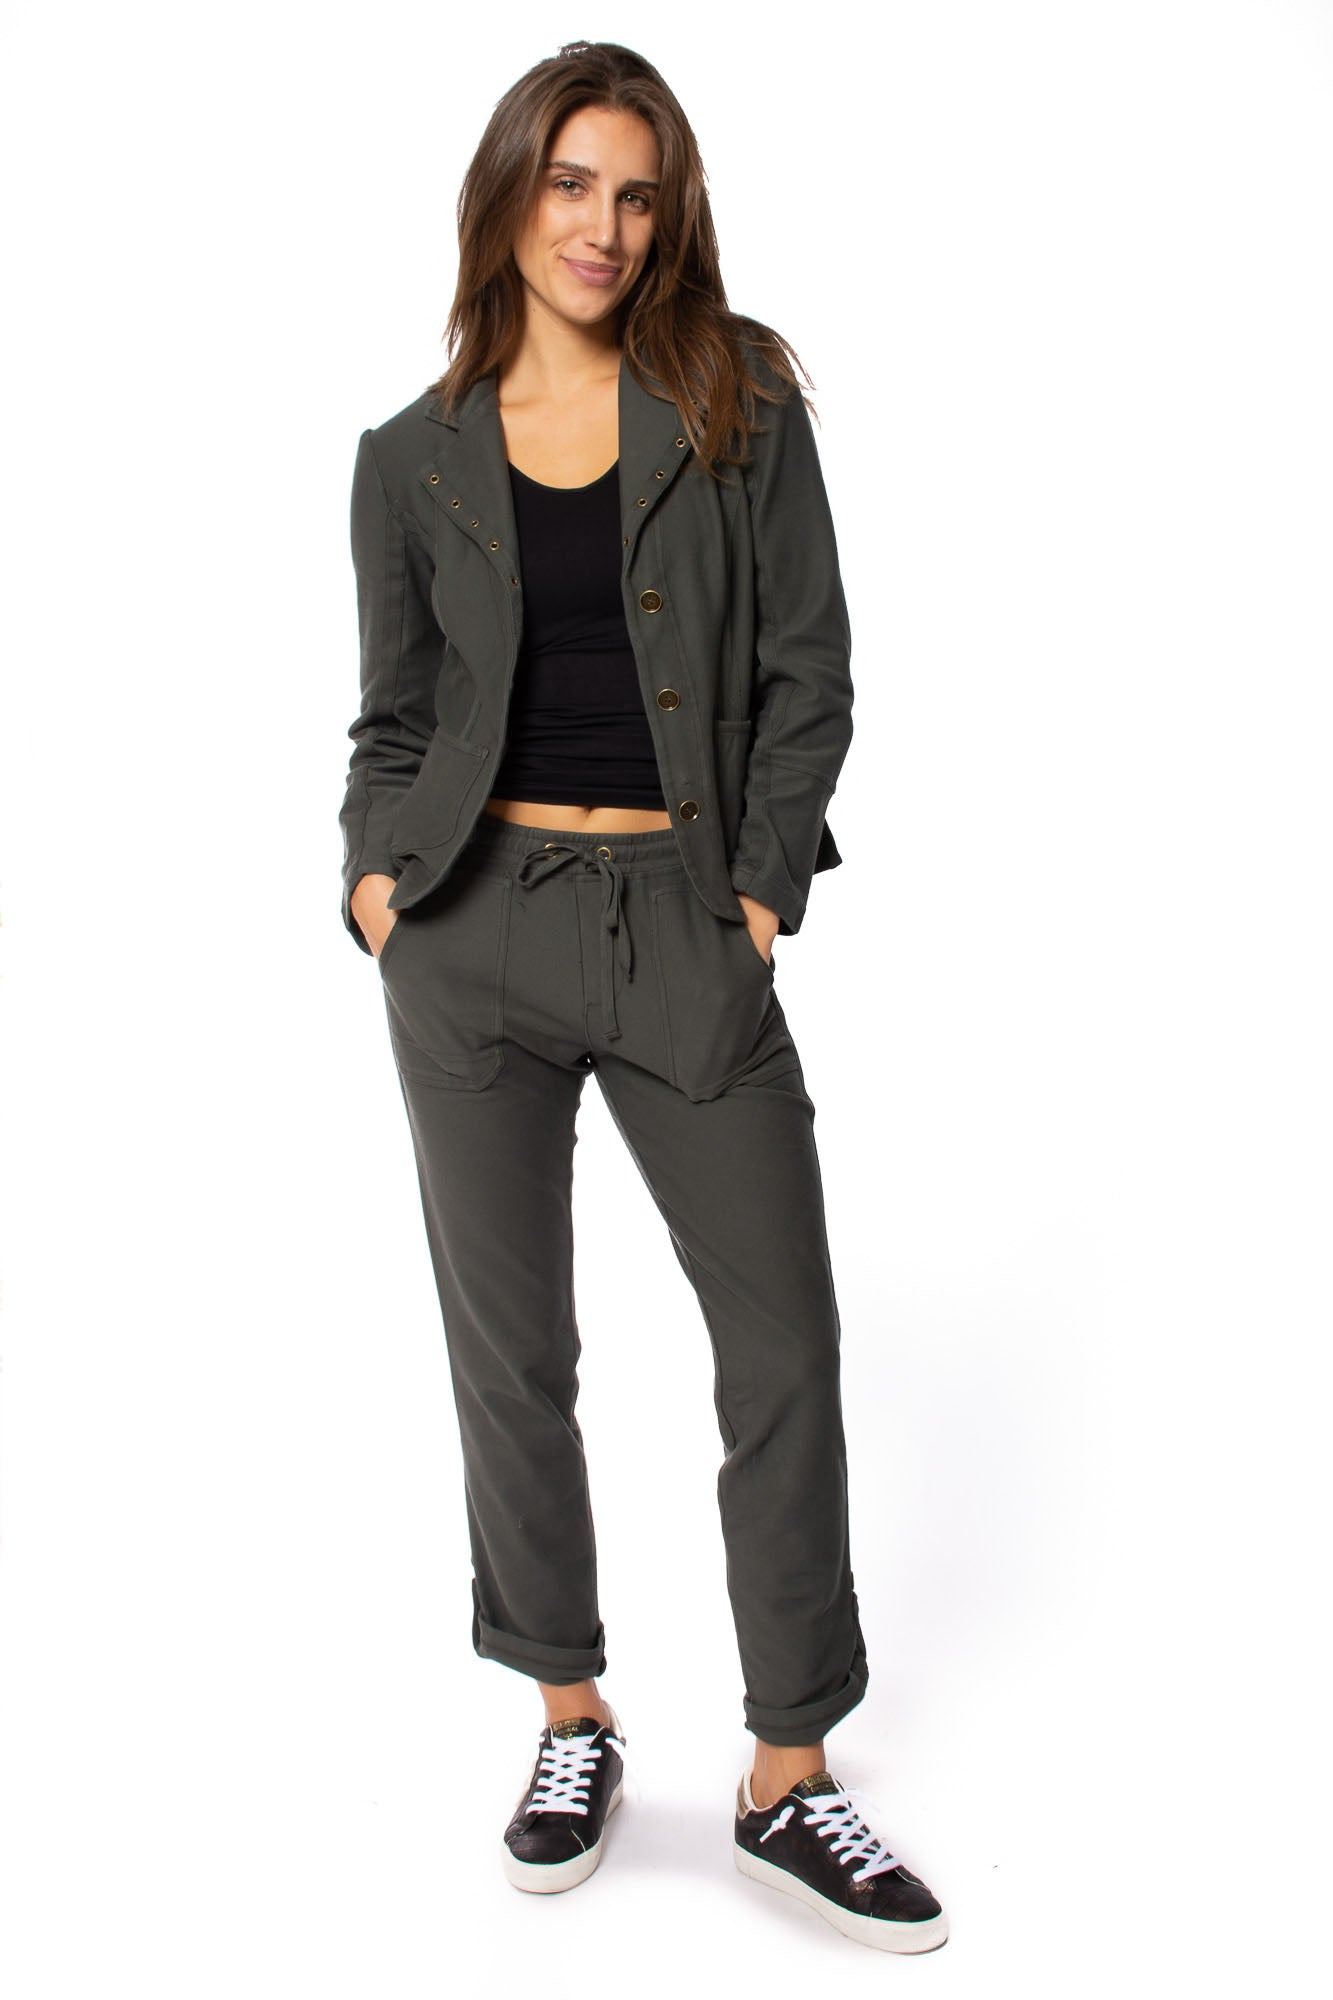 XCVI - Olsen Jacket (13871, Dark Grey)